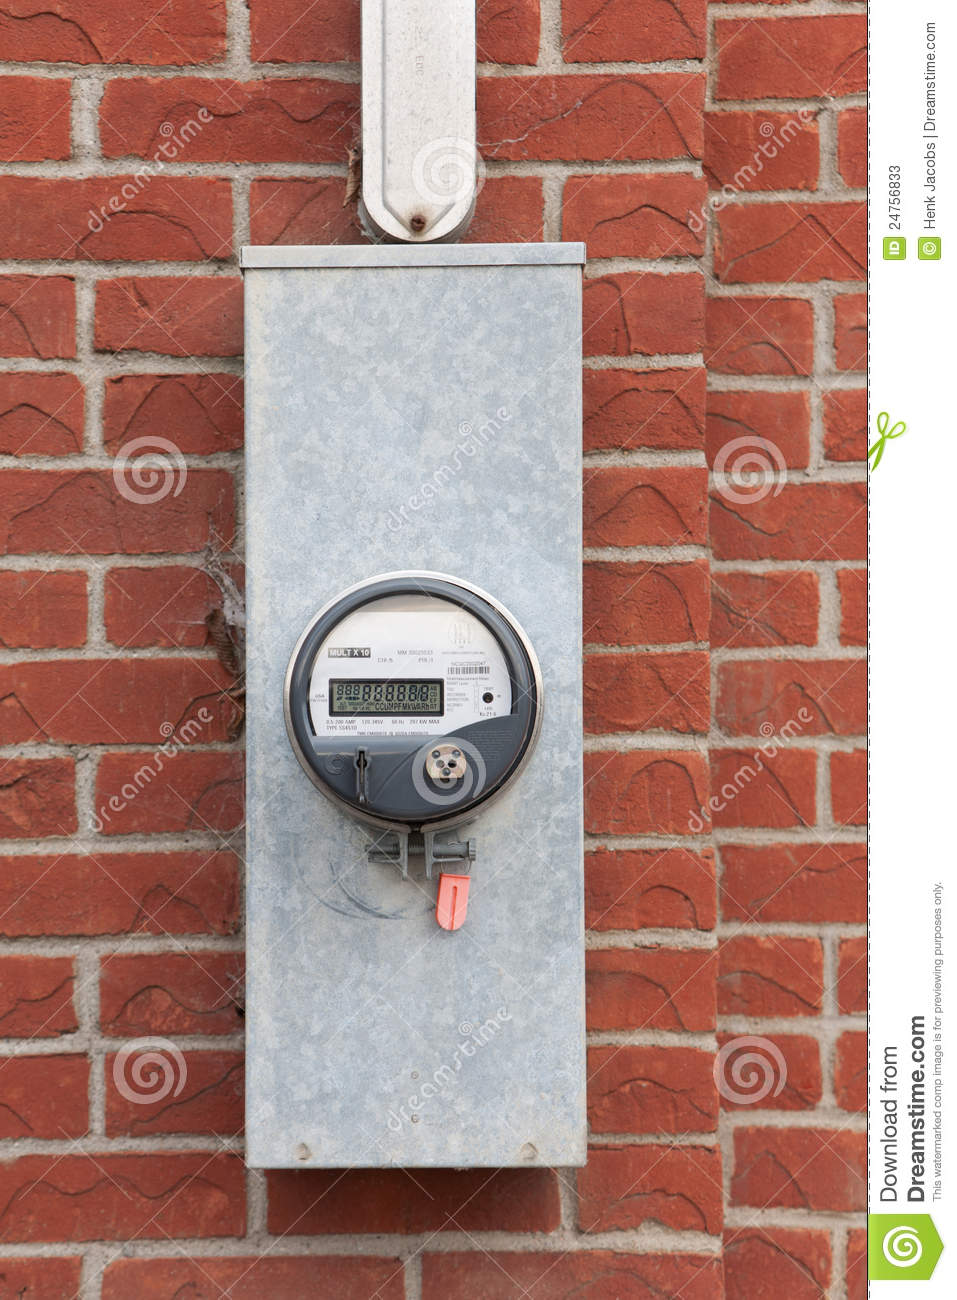 Commercial Bi-Directional TOU Hydro Meter